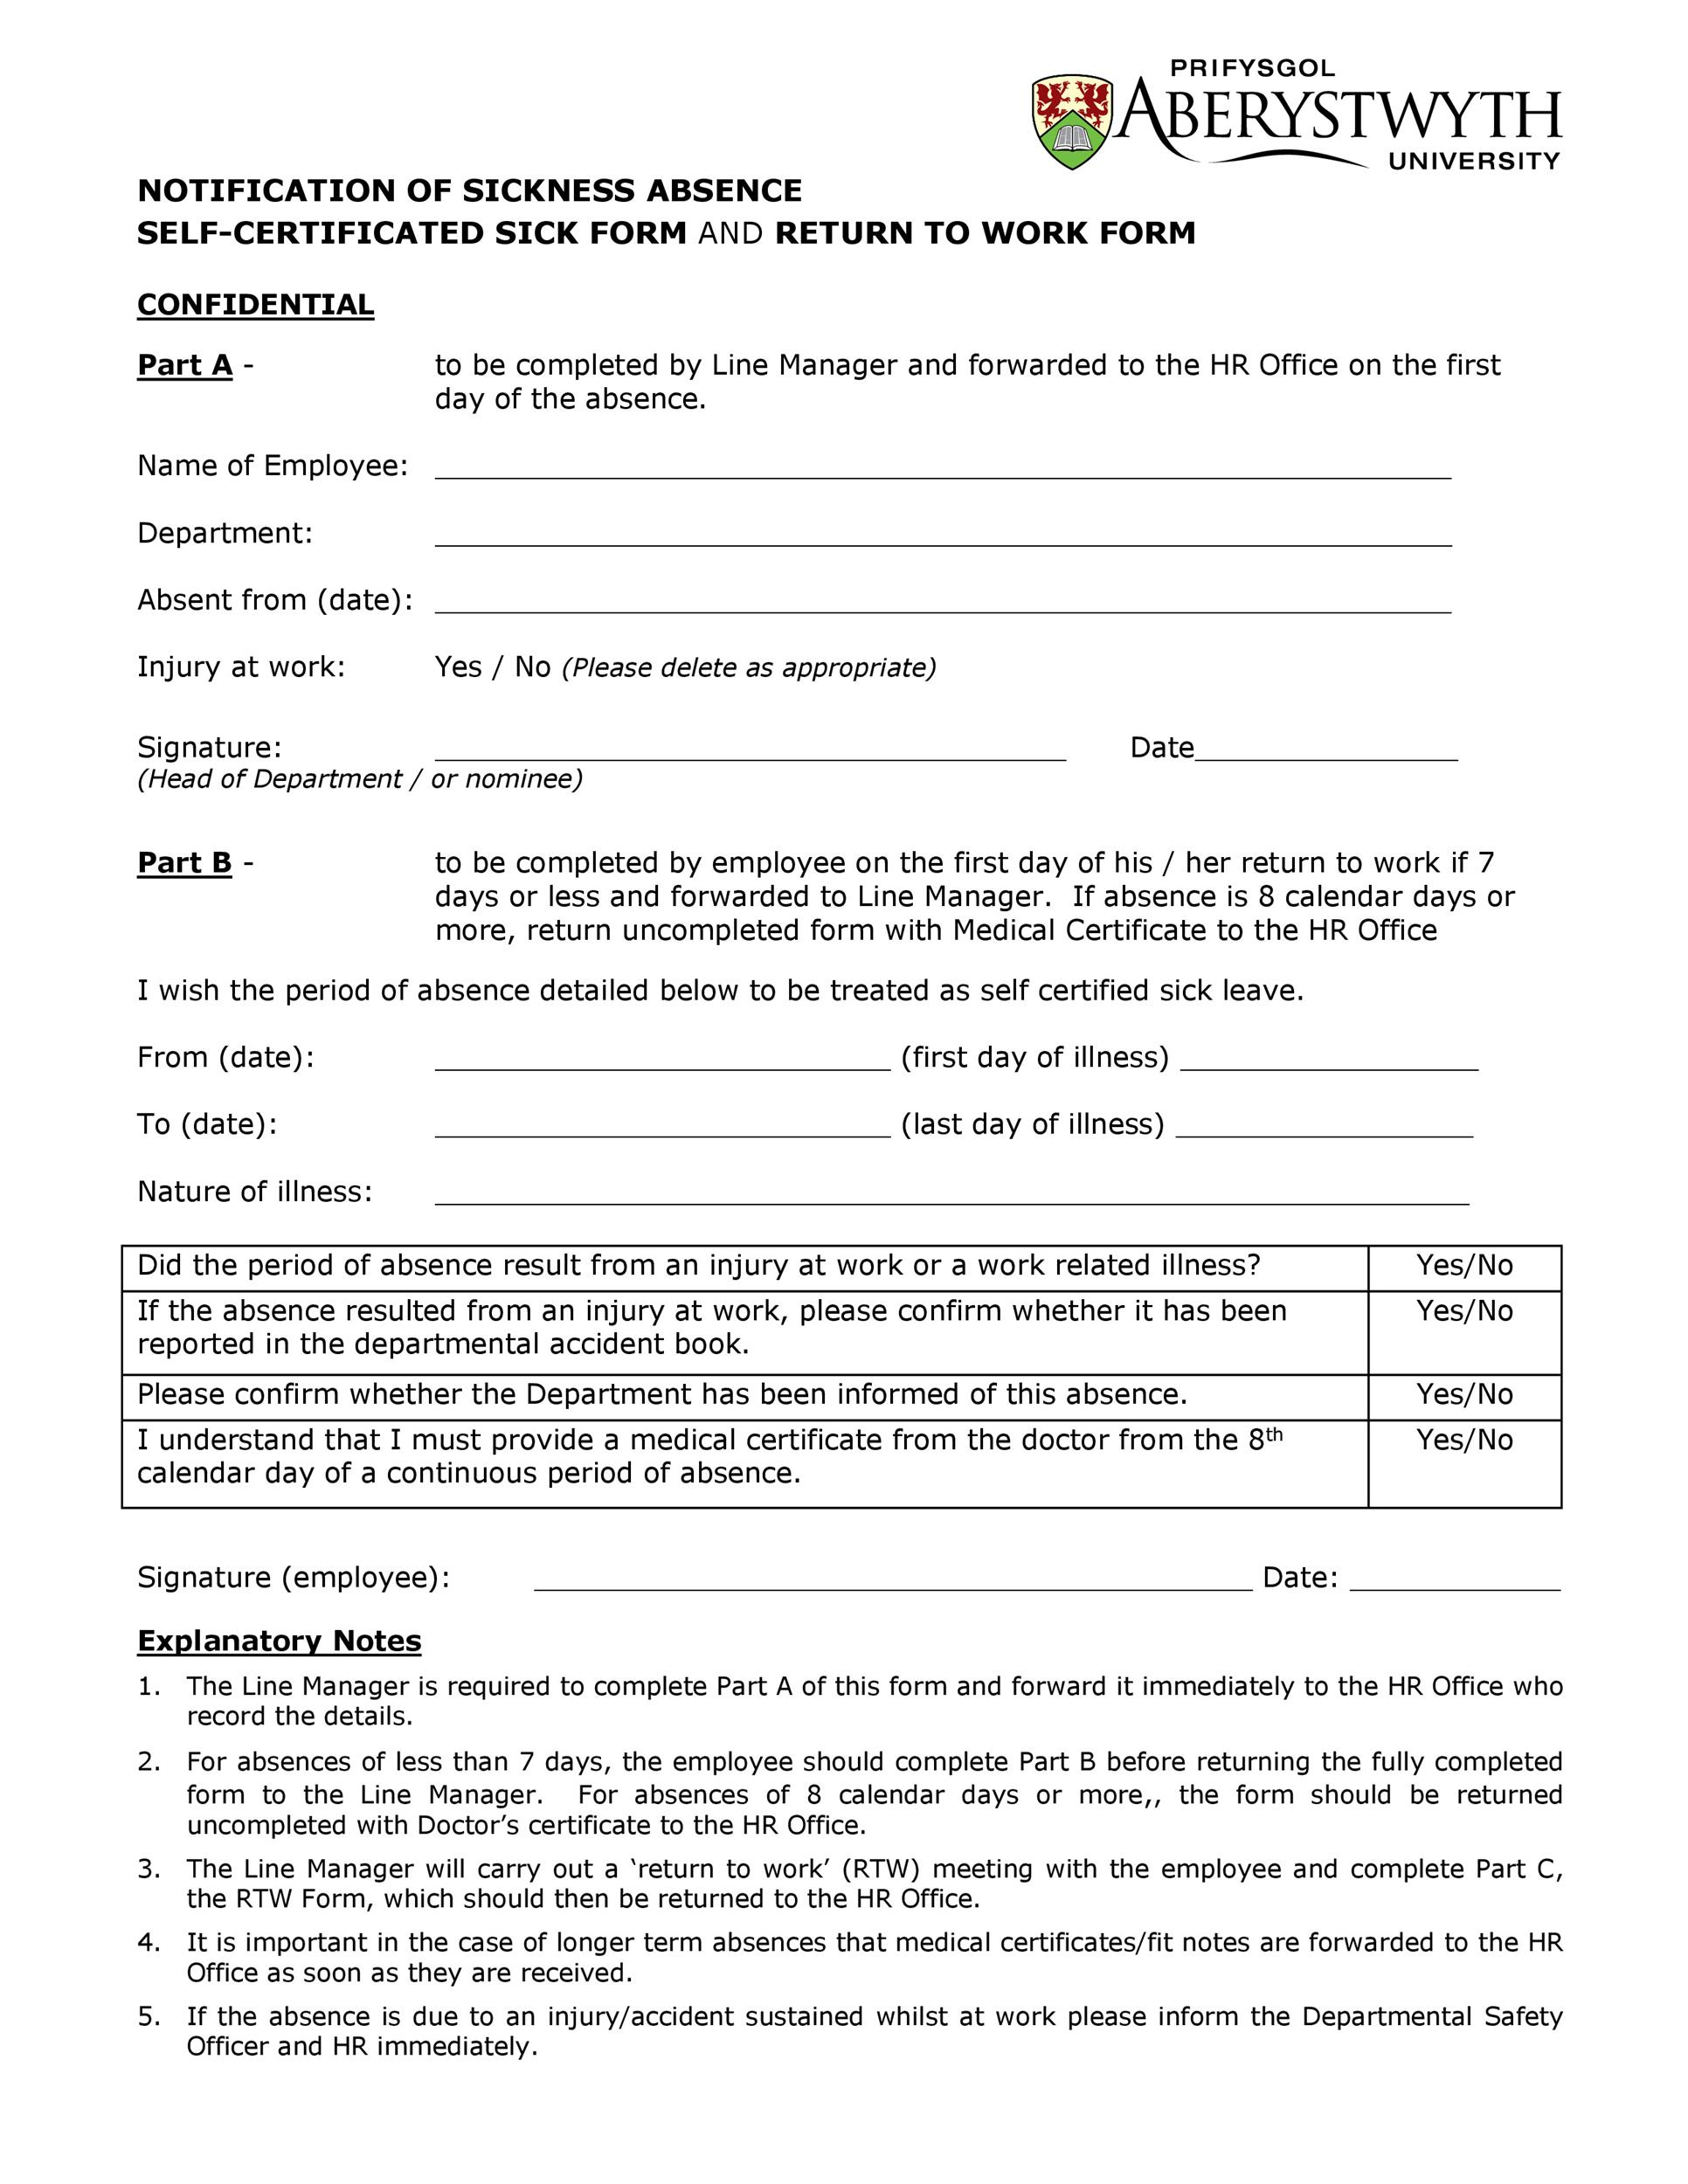 Free return to work form 21